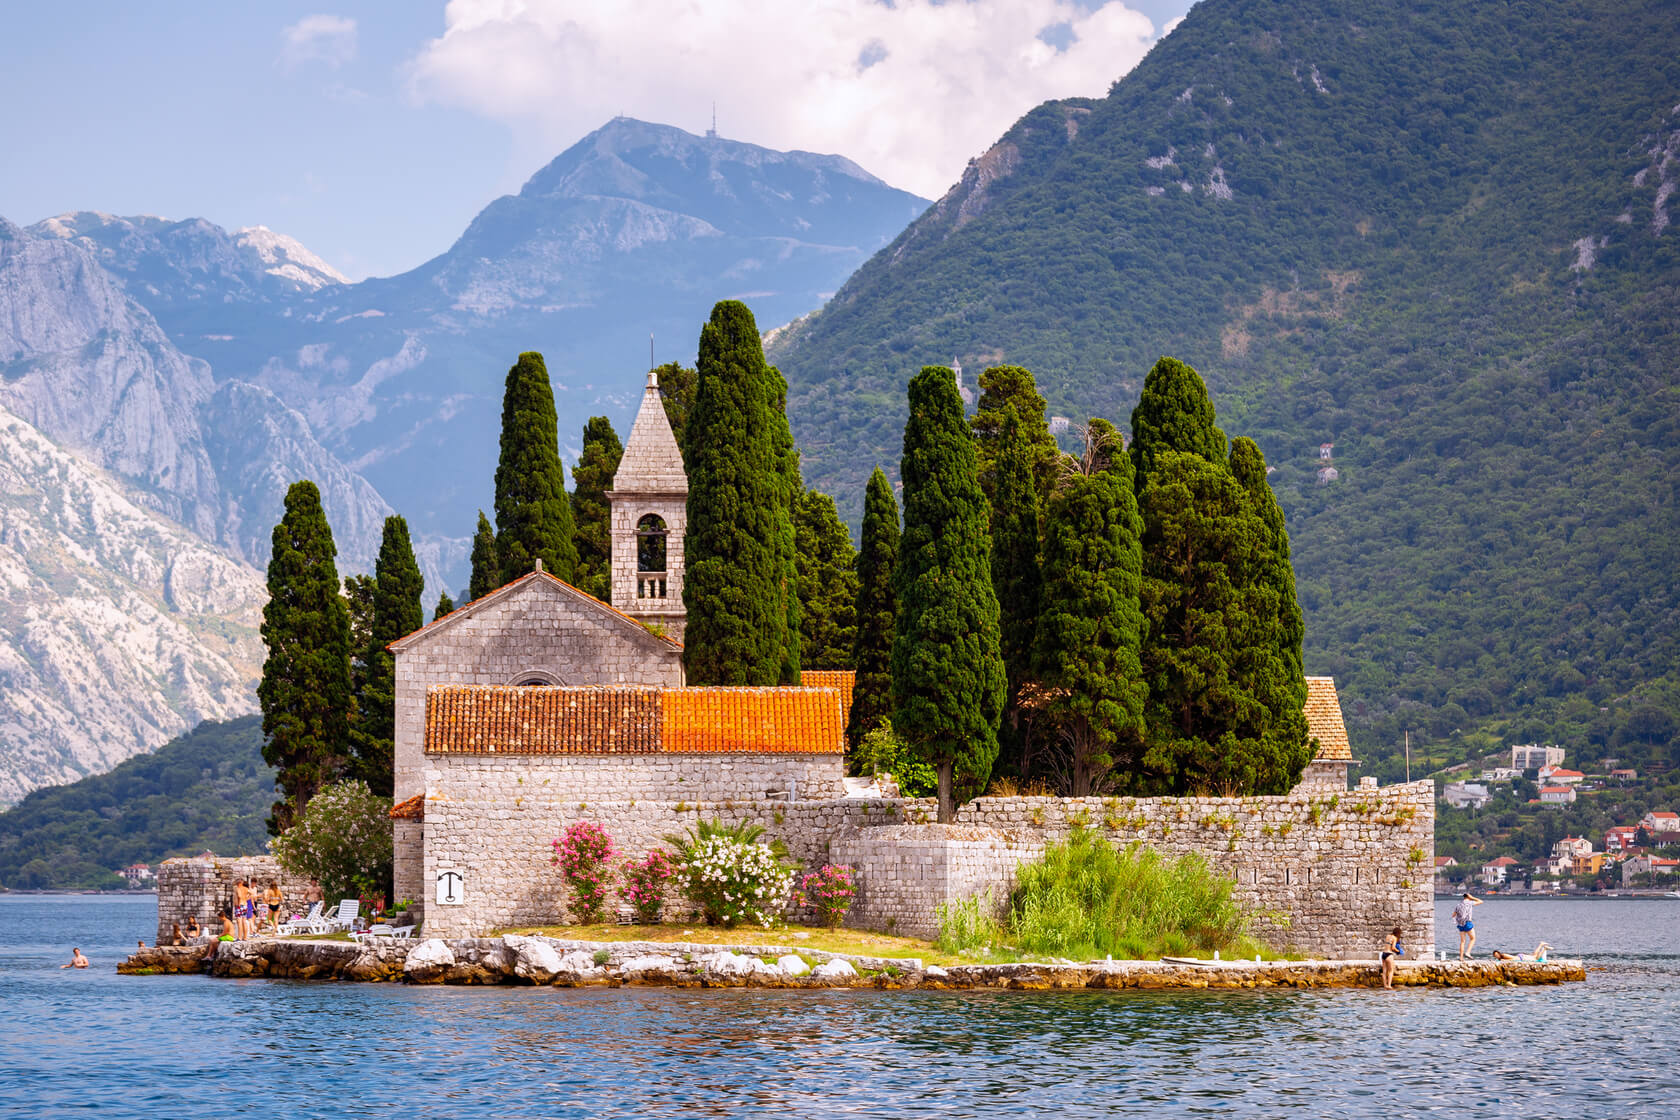 https://www.gettyimages.com/detail/photo/sveti-juraj-monastery-saint-george-island-perast-royalty-free-image/1159470601(Perast, Our lady of the rocks)The beautiful and iconic Sveti Juraj Monastery on Saint George Island in Perast, Montenegro Photograph taken from near the Our Lady of the Rocks during the day.